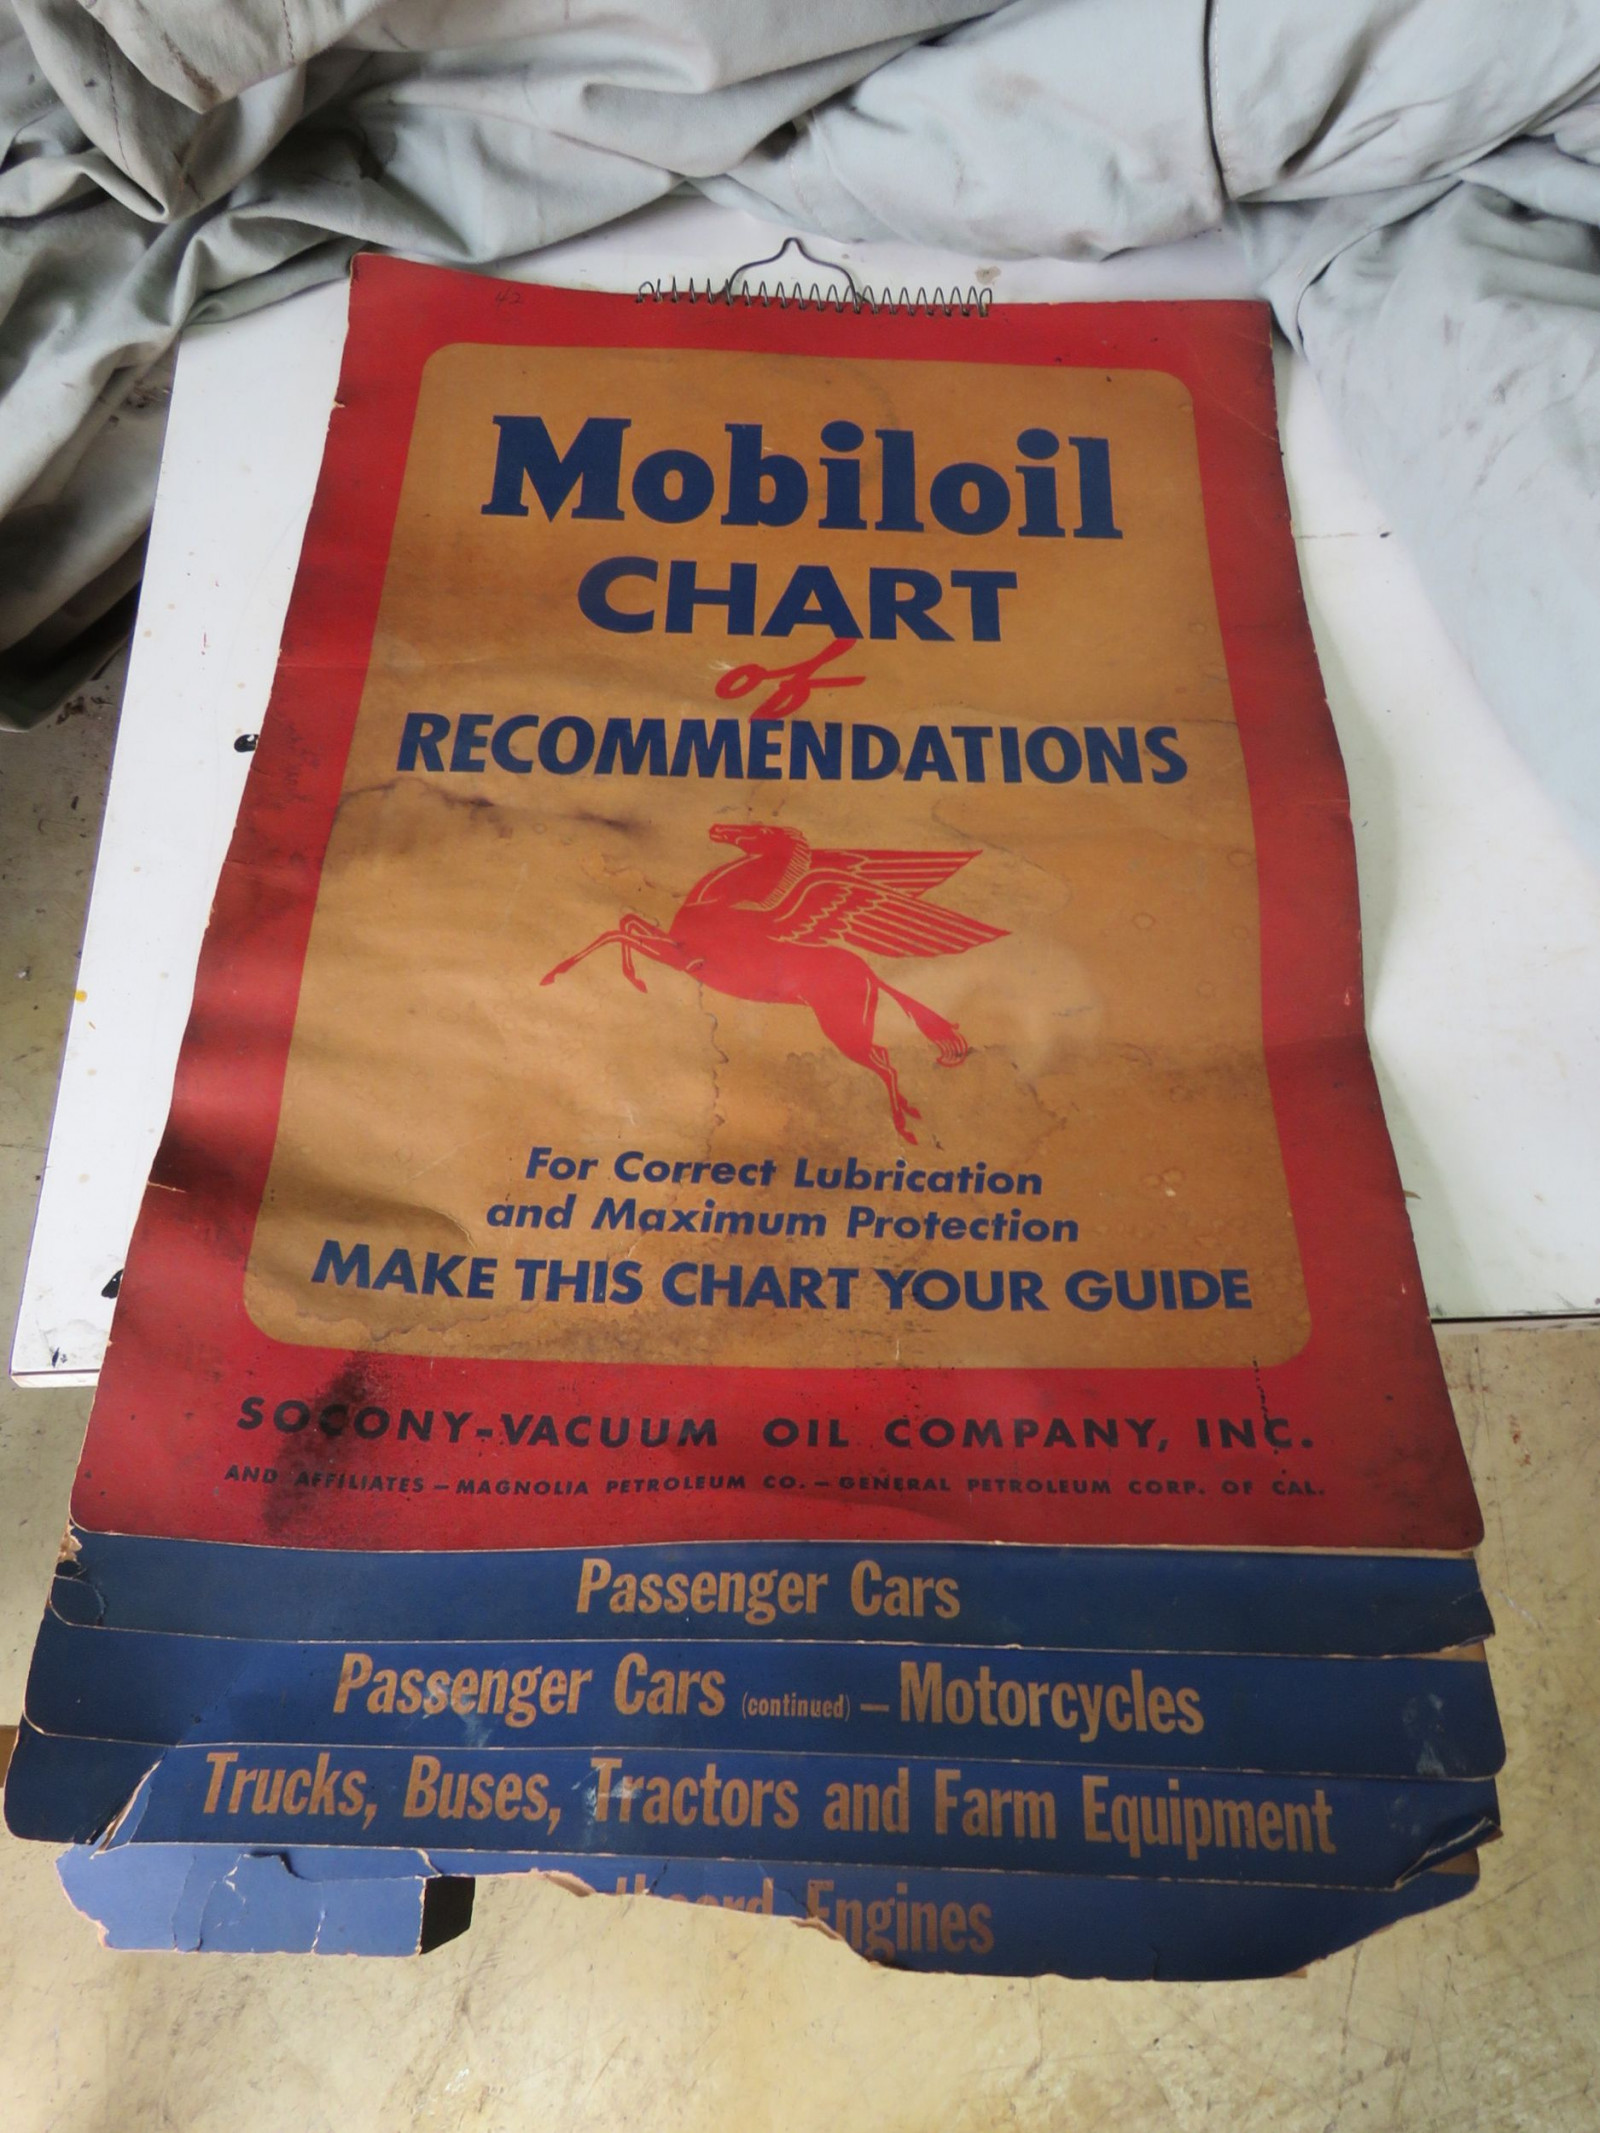 Mobil Oil Chart - Image 1